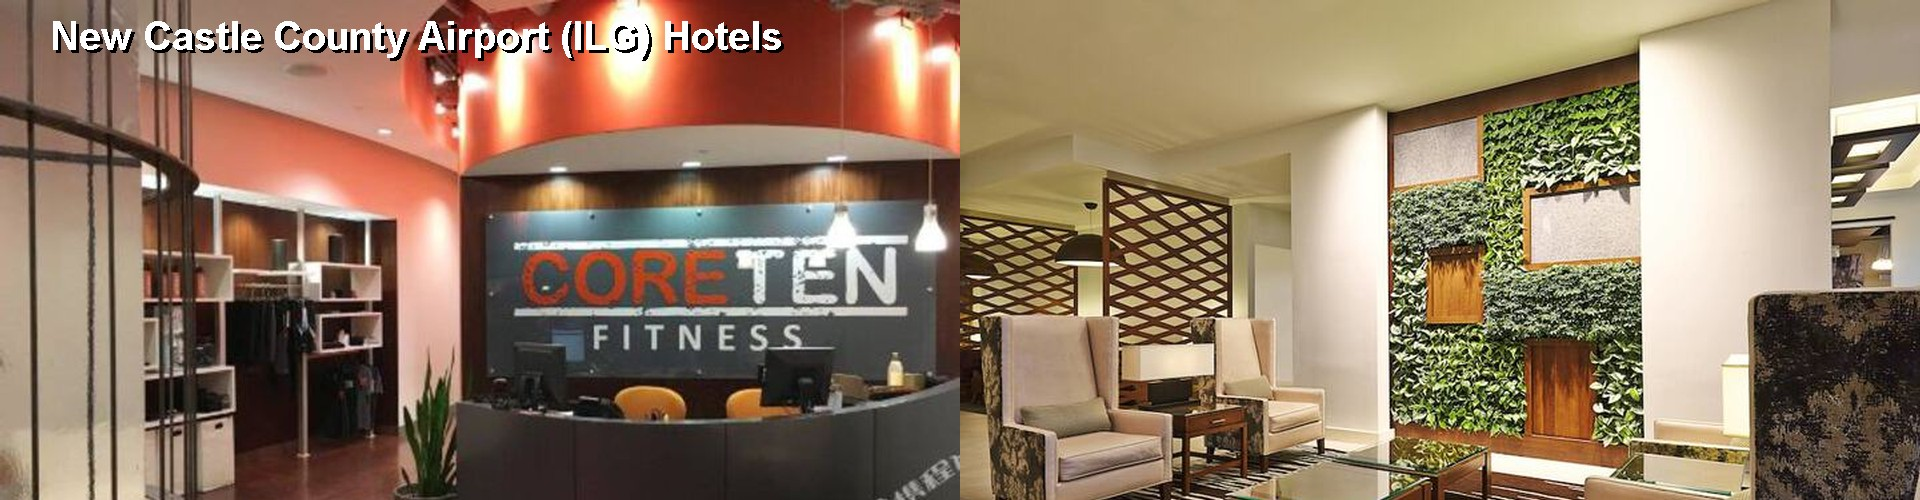 5 Best Hotels near New Castle County Airport (ILG)